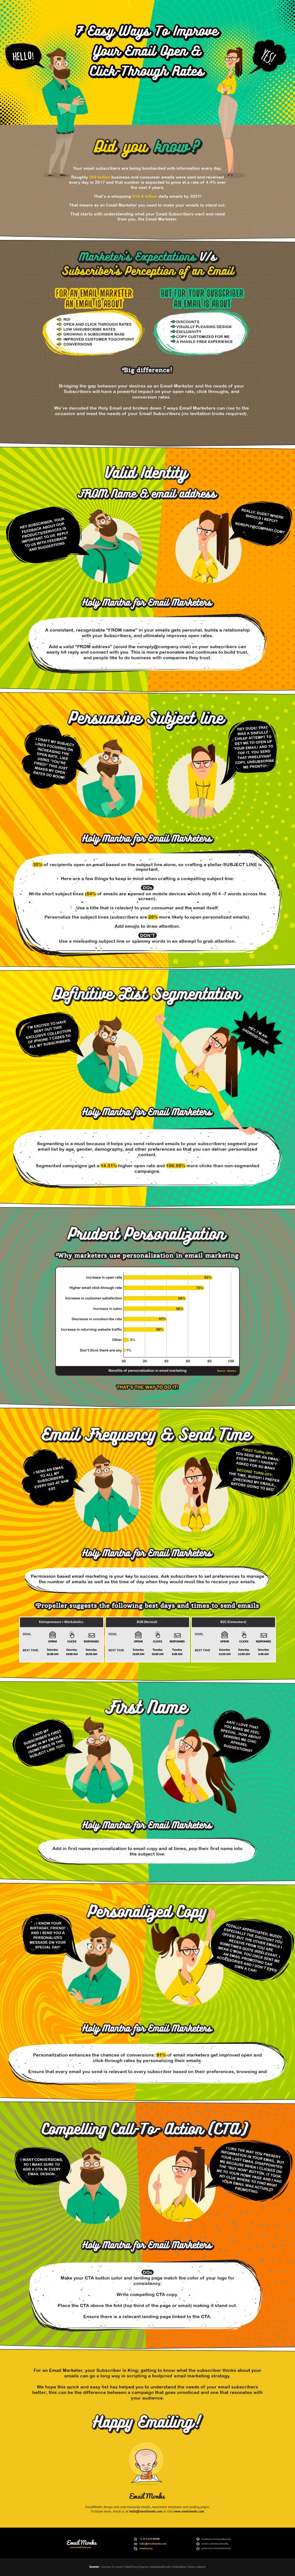 Infographic: Email Engagement Tactics